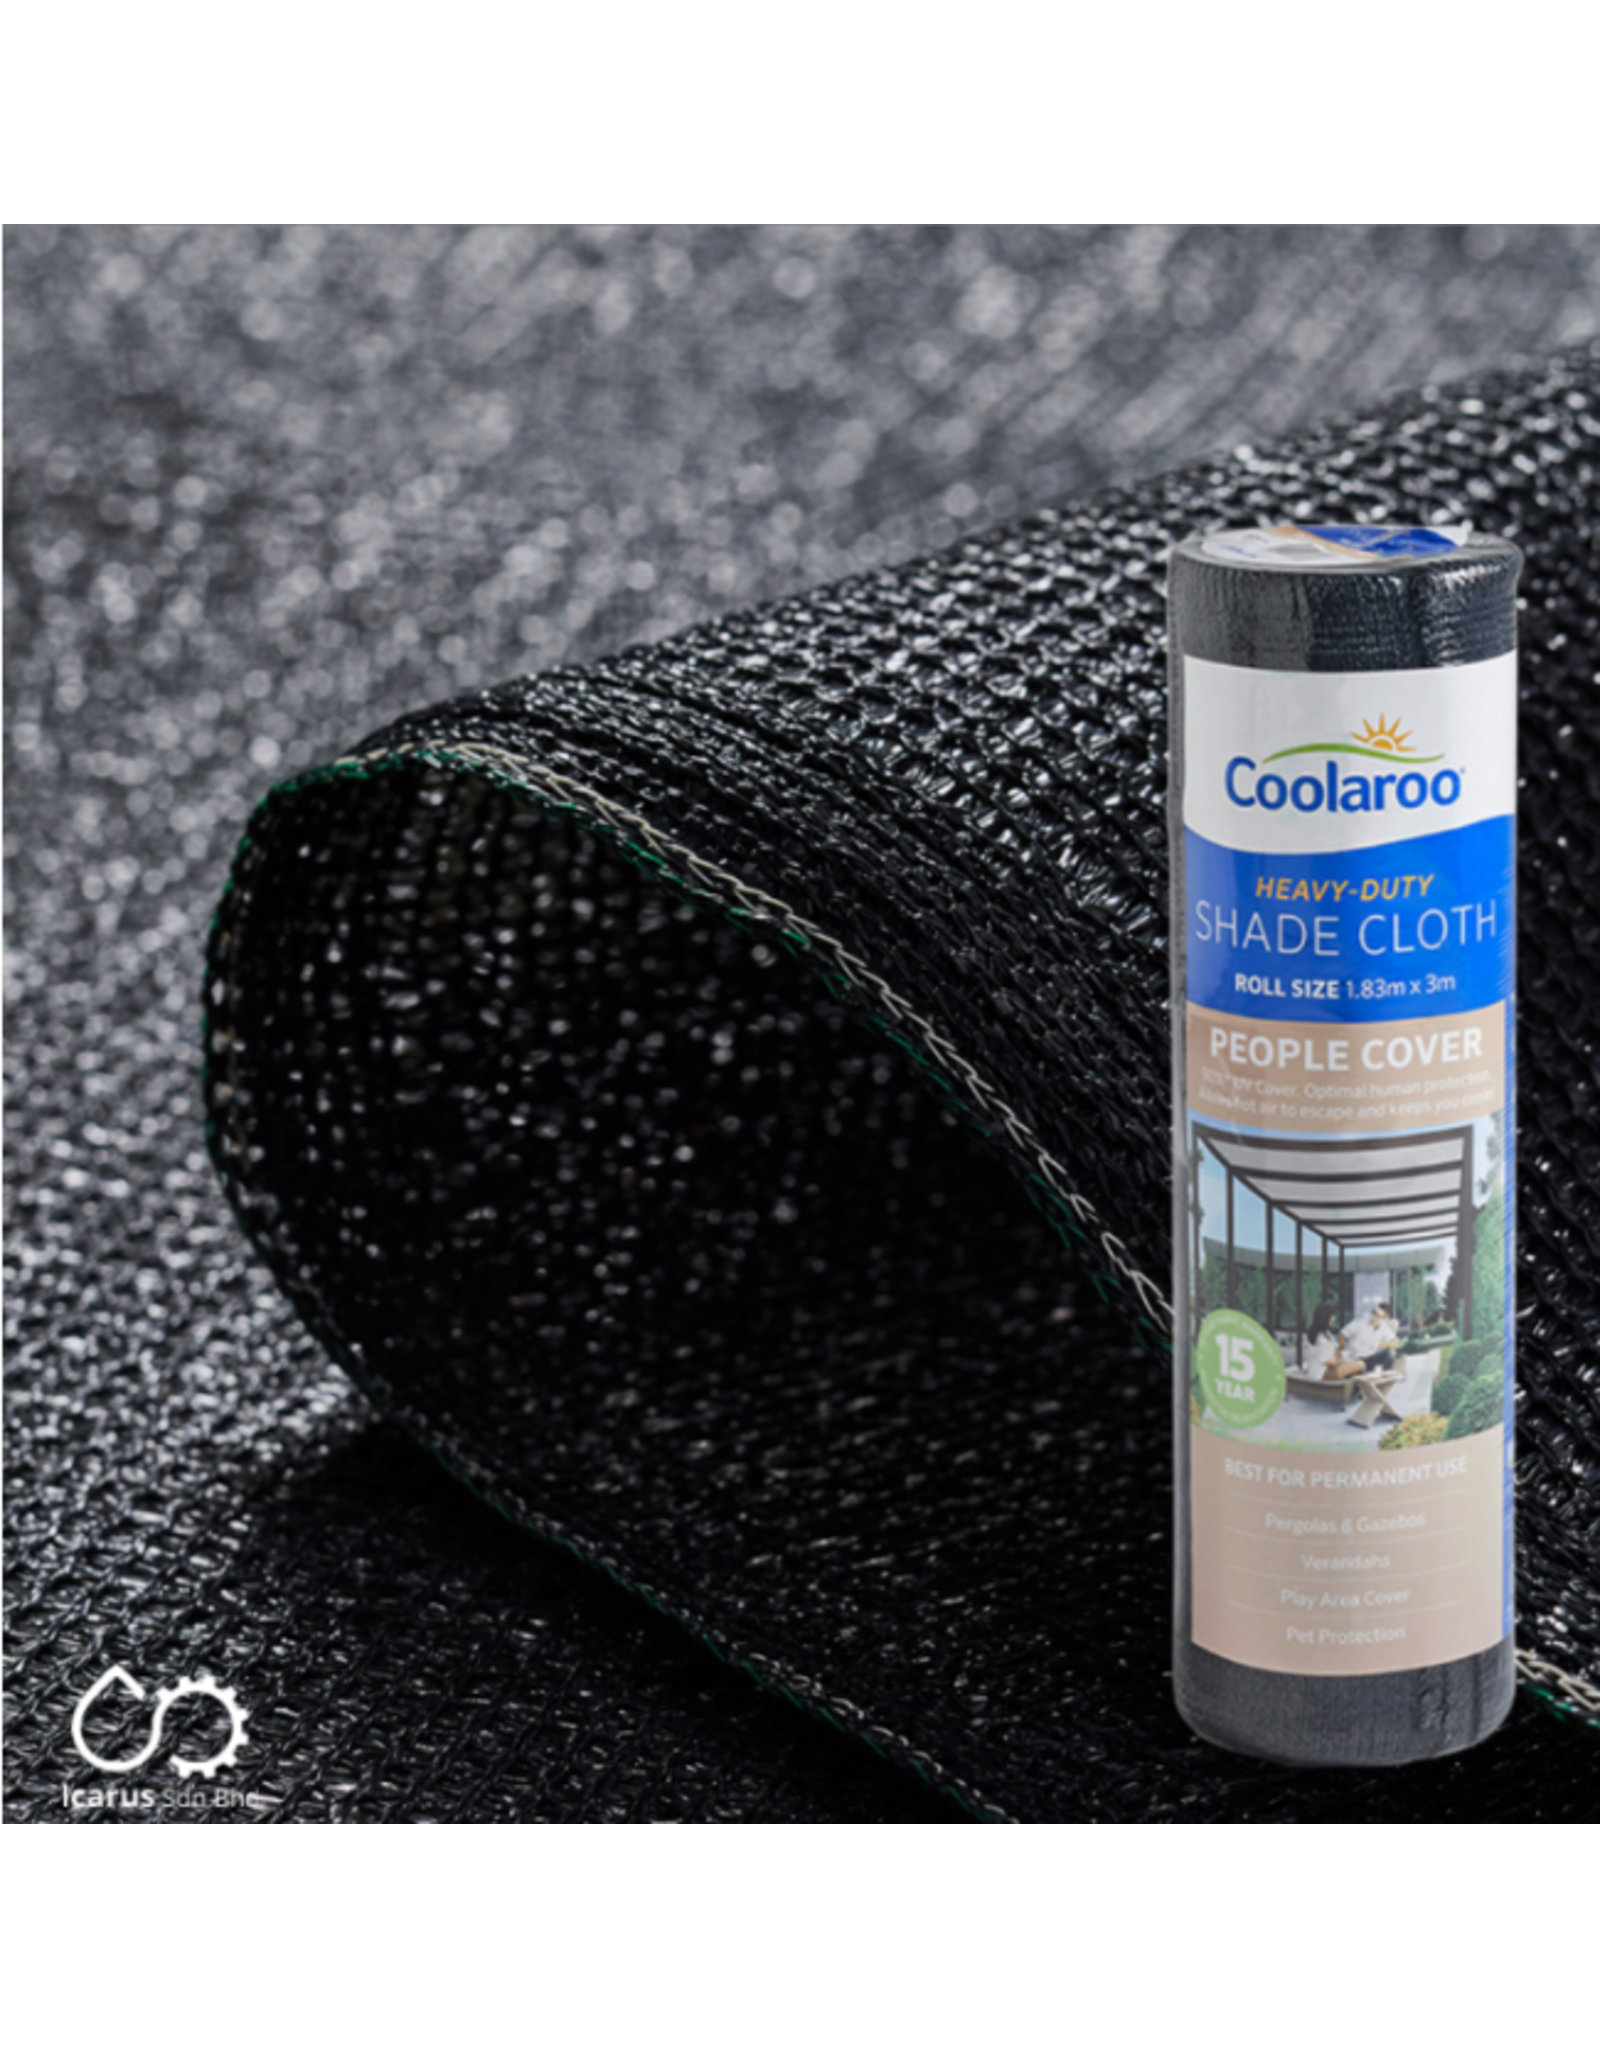 Coolaroo 1.83 x 3m  People Cover Shade Cloth, 90% UV Protection, Color Charcoal